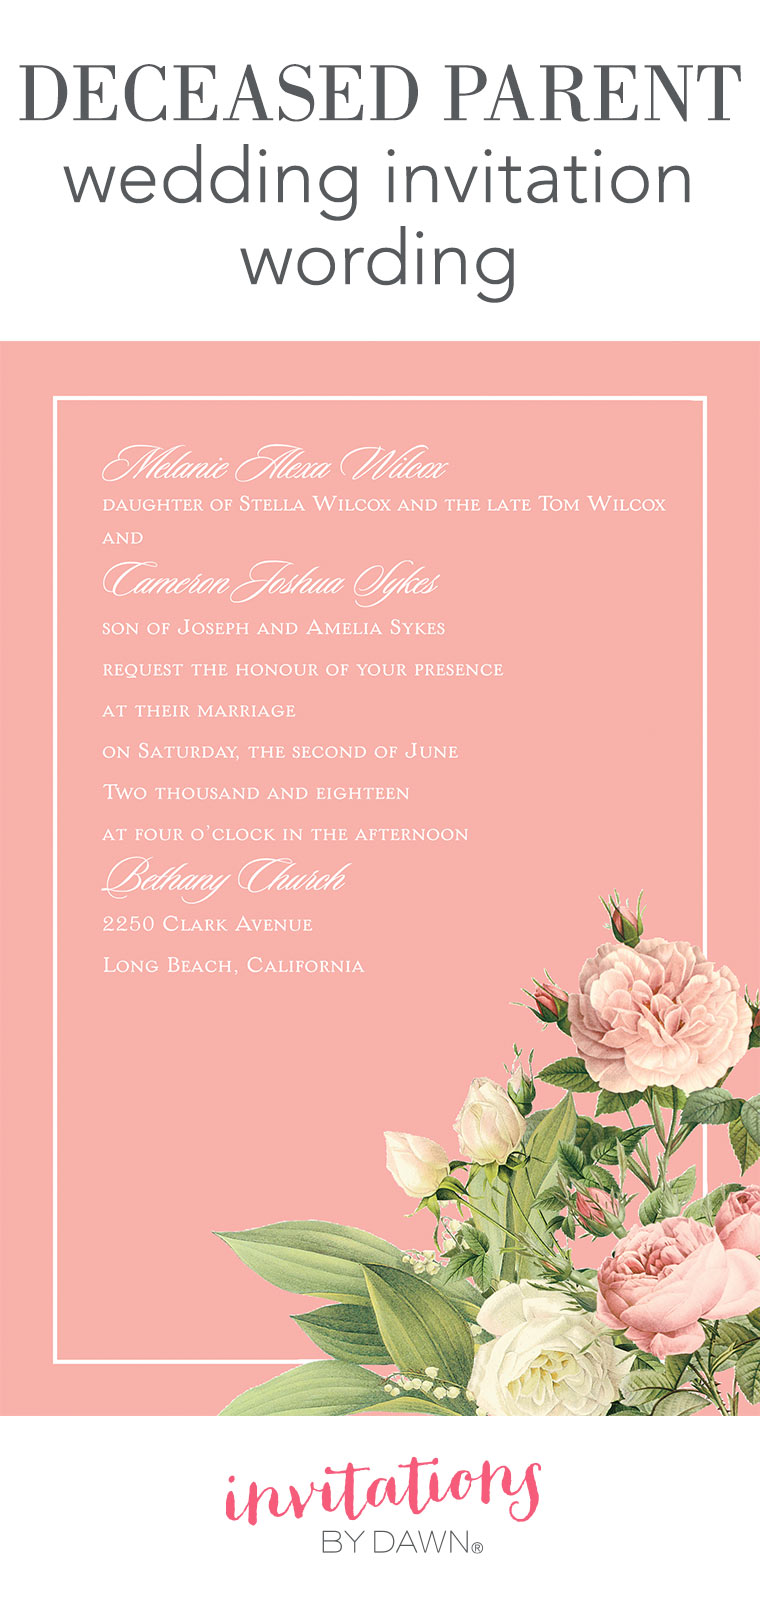 Deceased Parent Wedding Invitation Wording Invitations